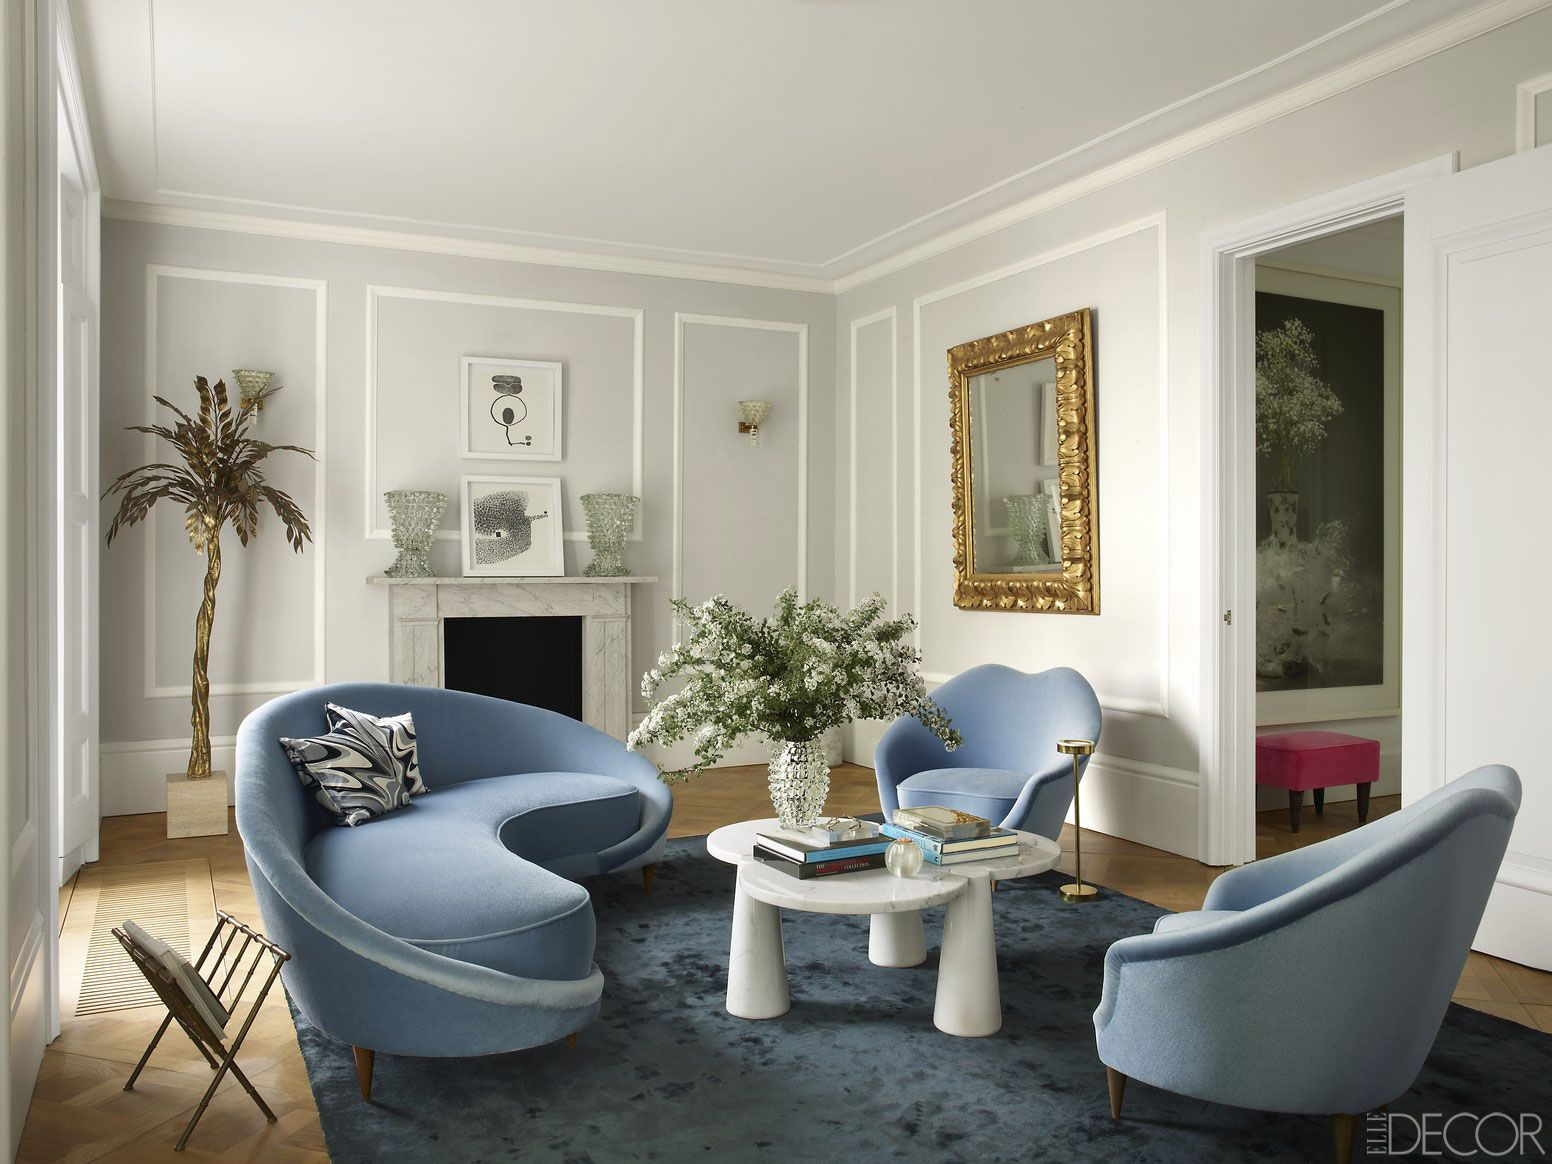 How To Decorate Around Your Favorite Rug